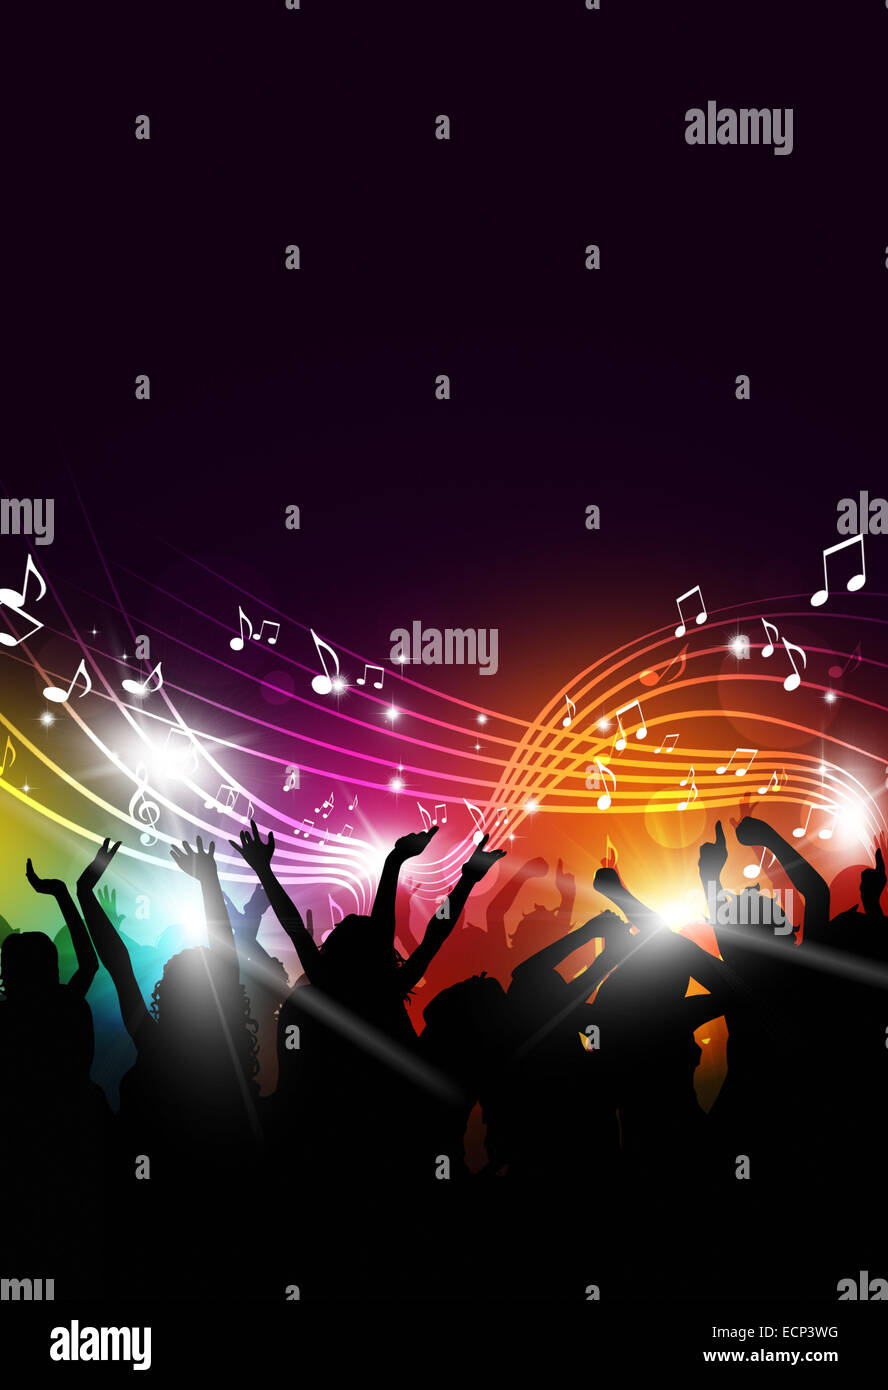 abstract party music background for flyers and night club posters